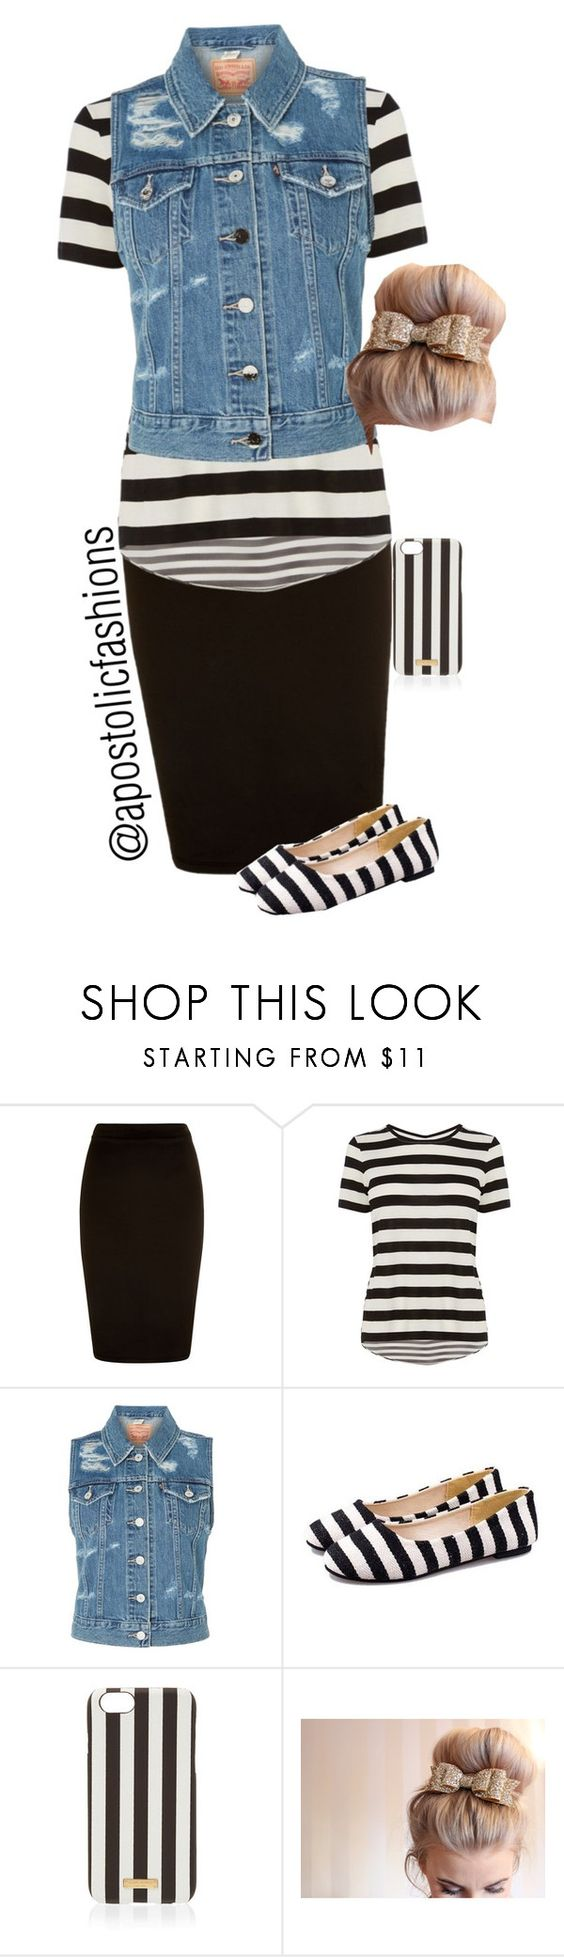 """Apostolic Fashions #965"" by apostolicfashions on Polyvore featuring Karen Millen, Levi's and Henri Bendel:"